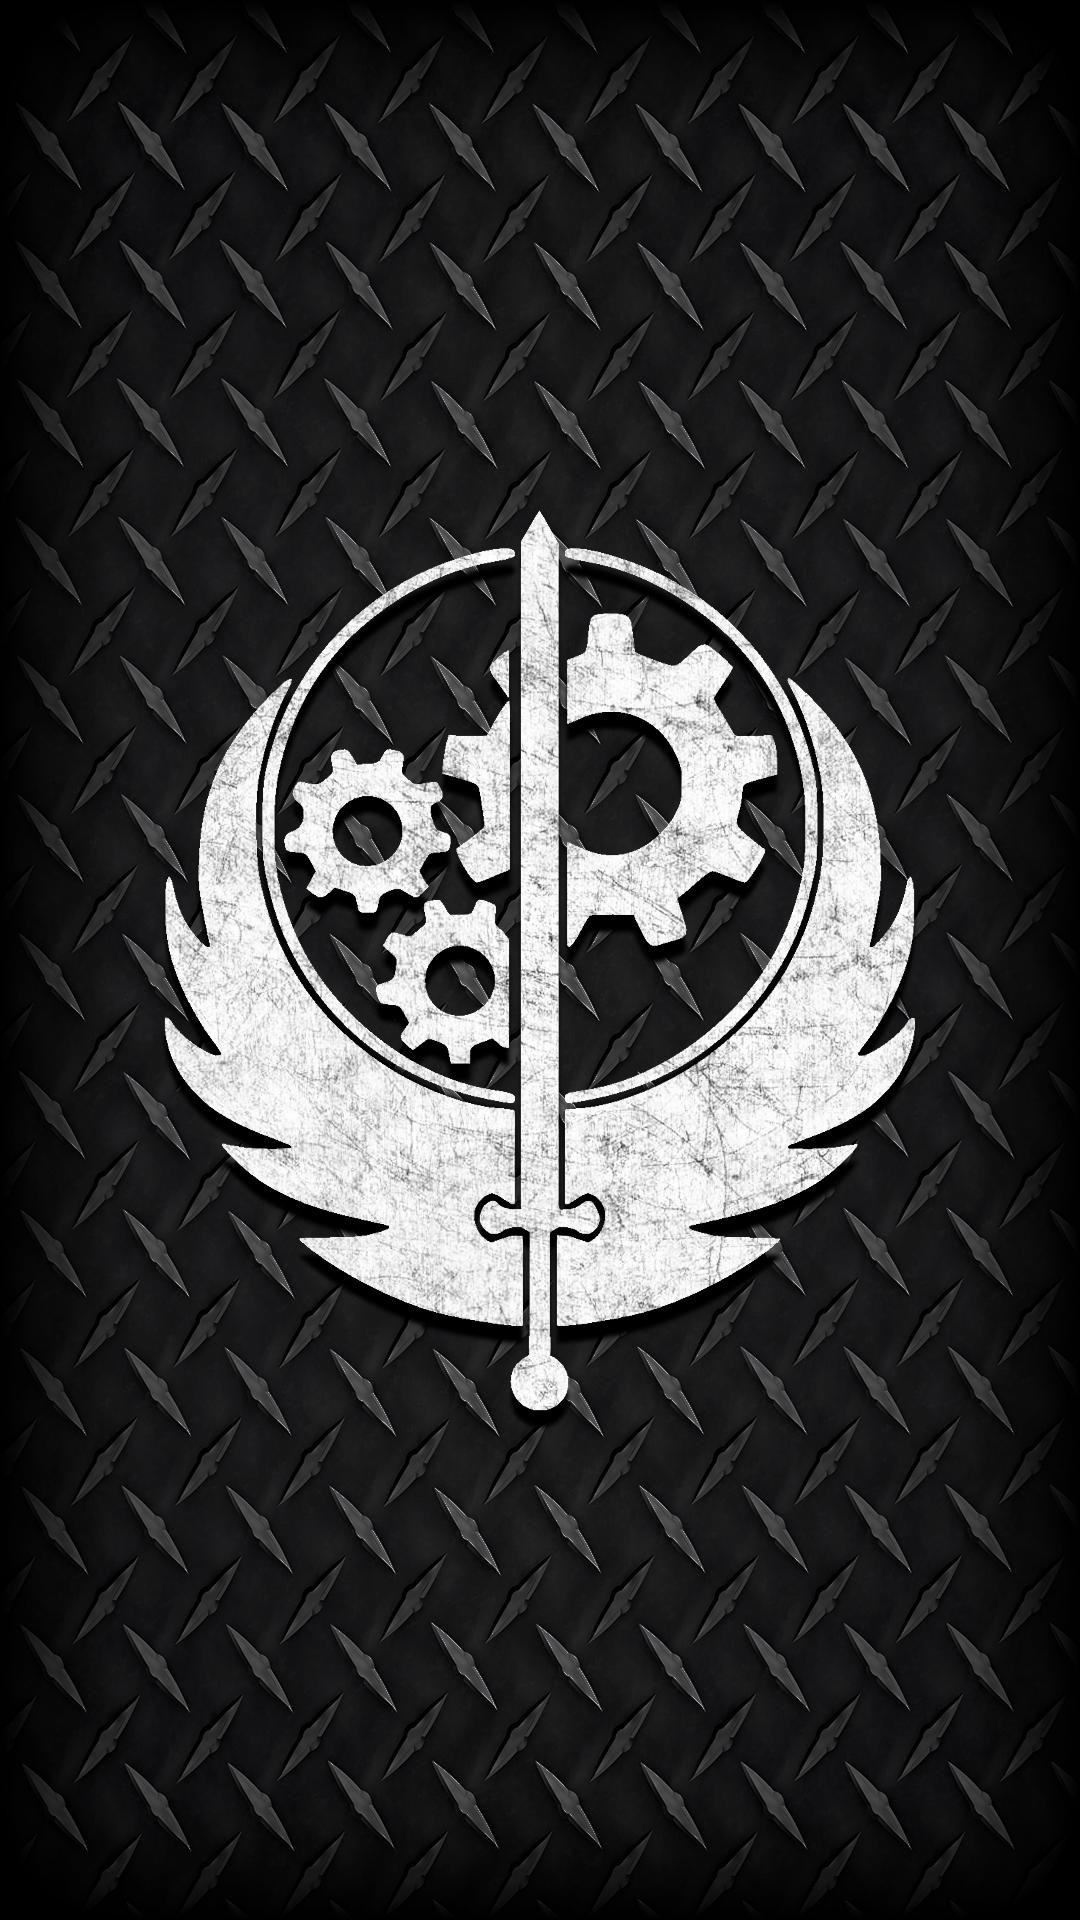 Fallout 4 Phone Wallpaper Download Free High Resolution